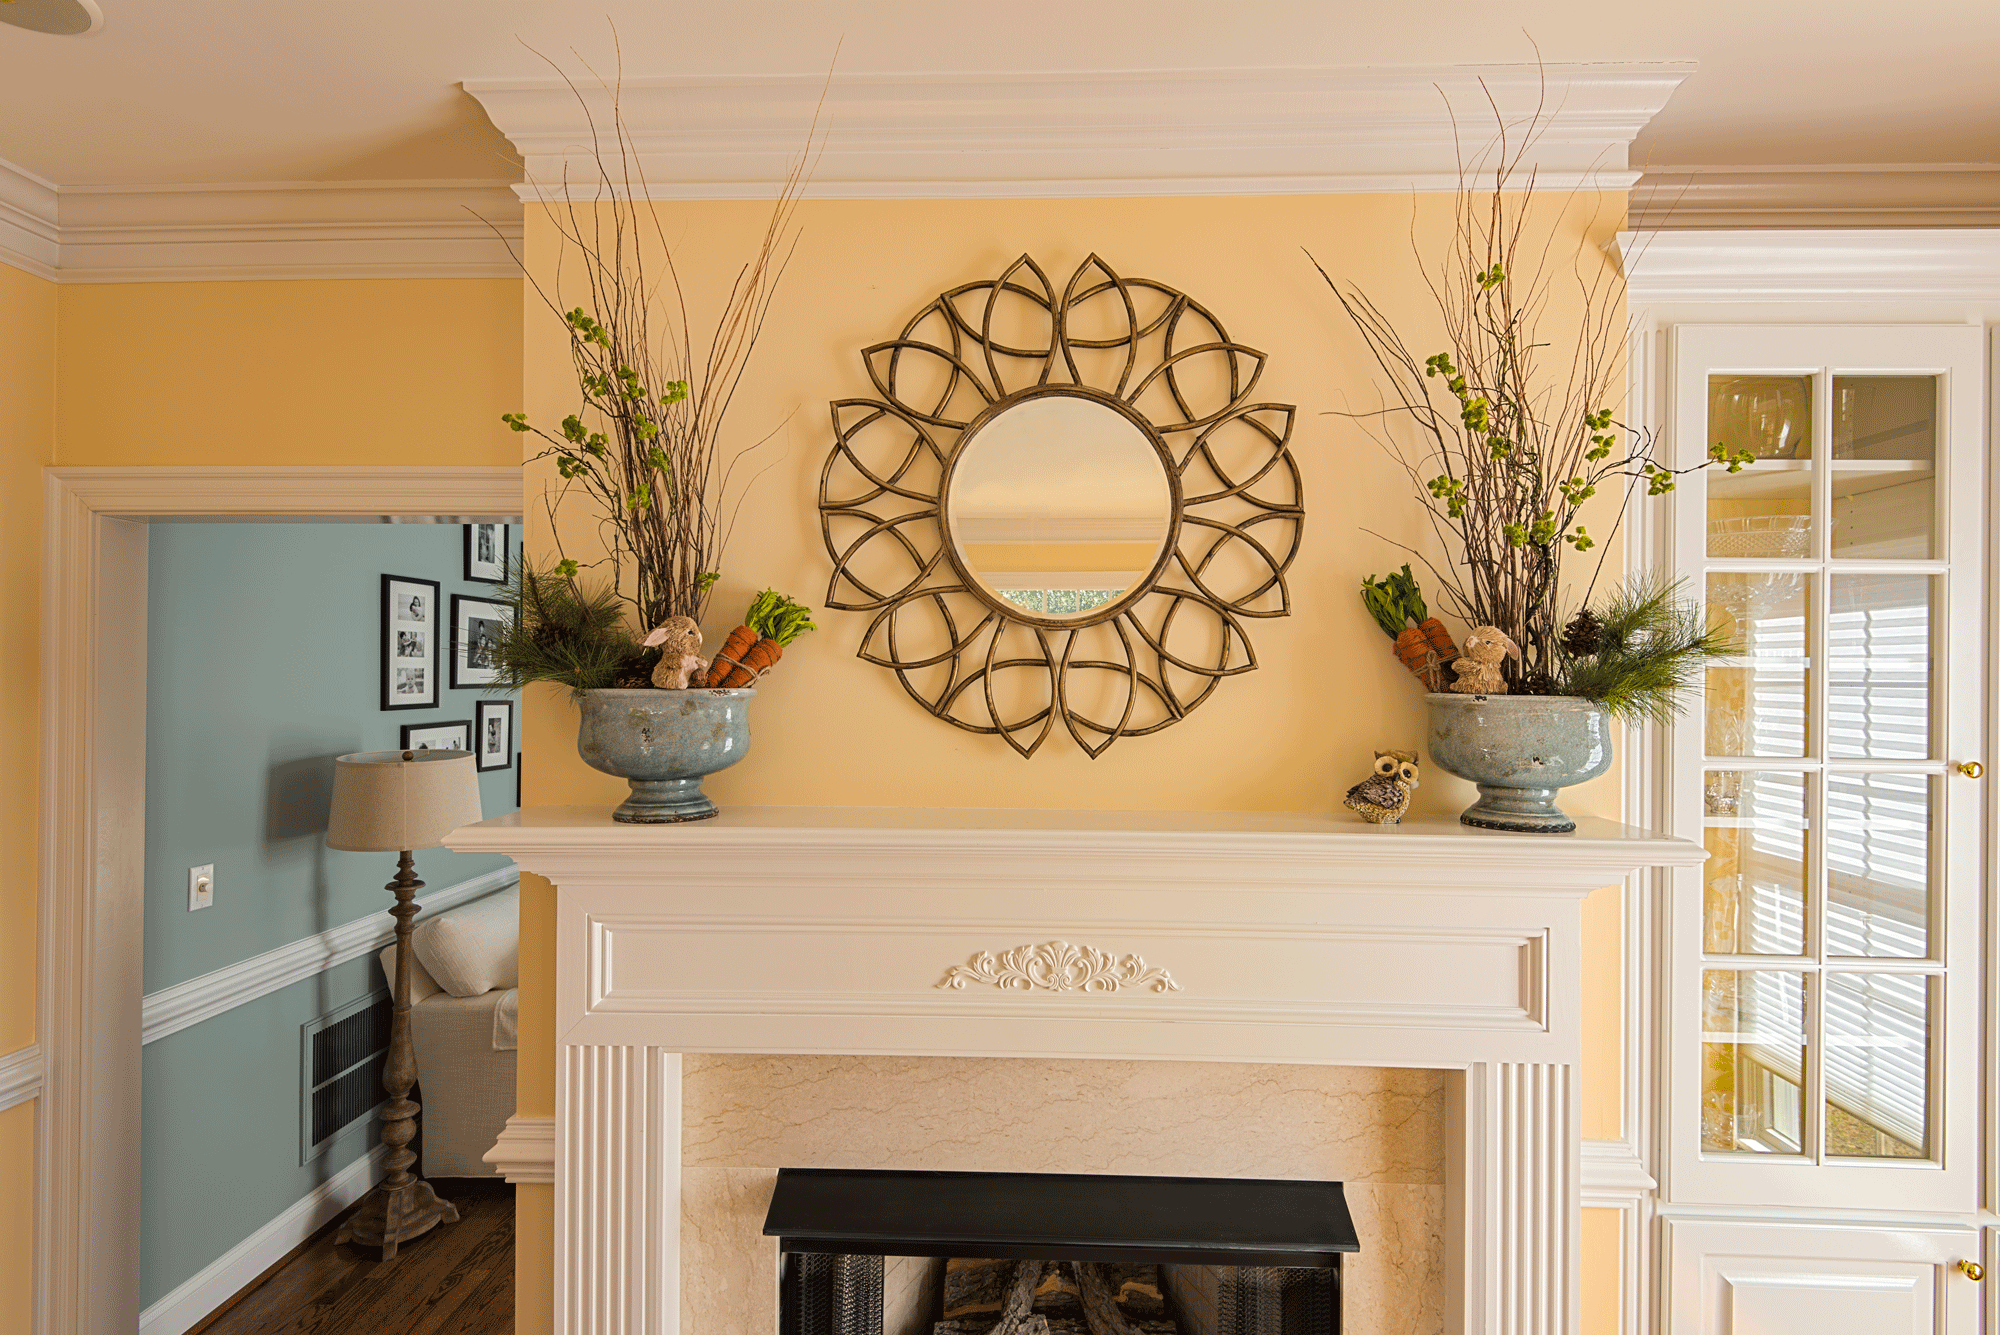 Mantle design and decor with mirror and plants